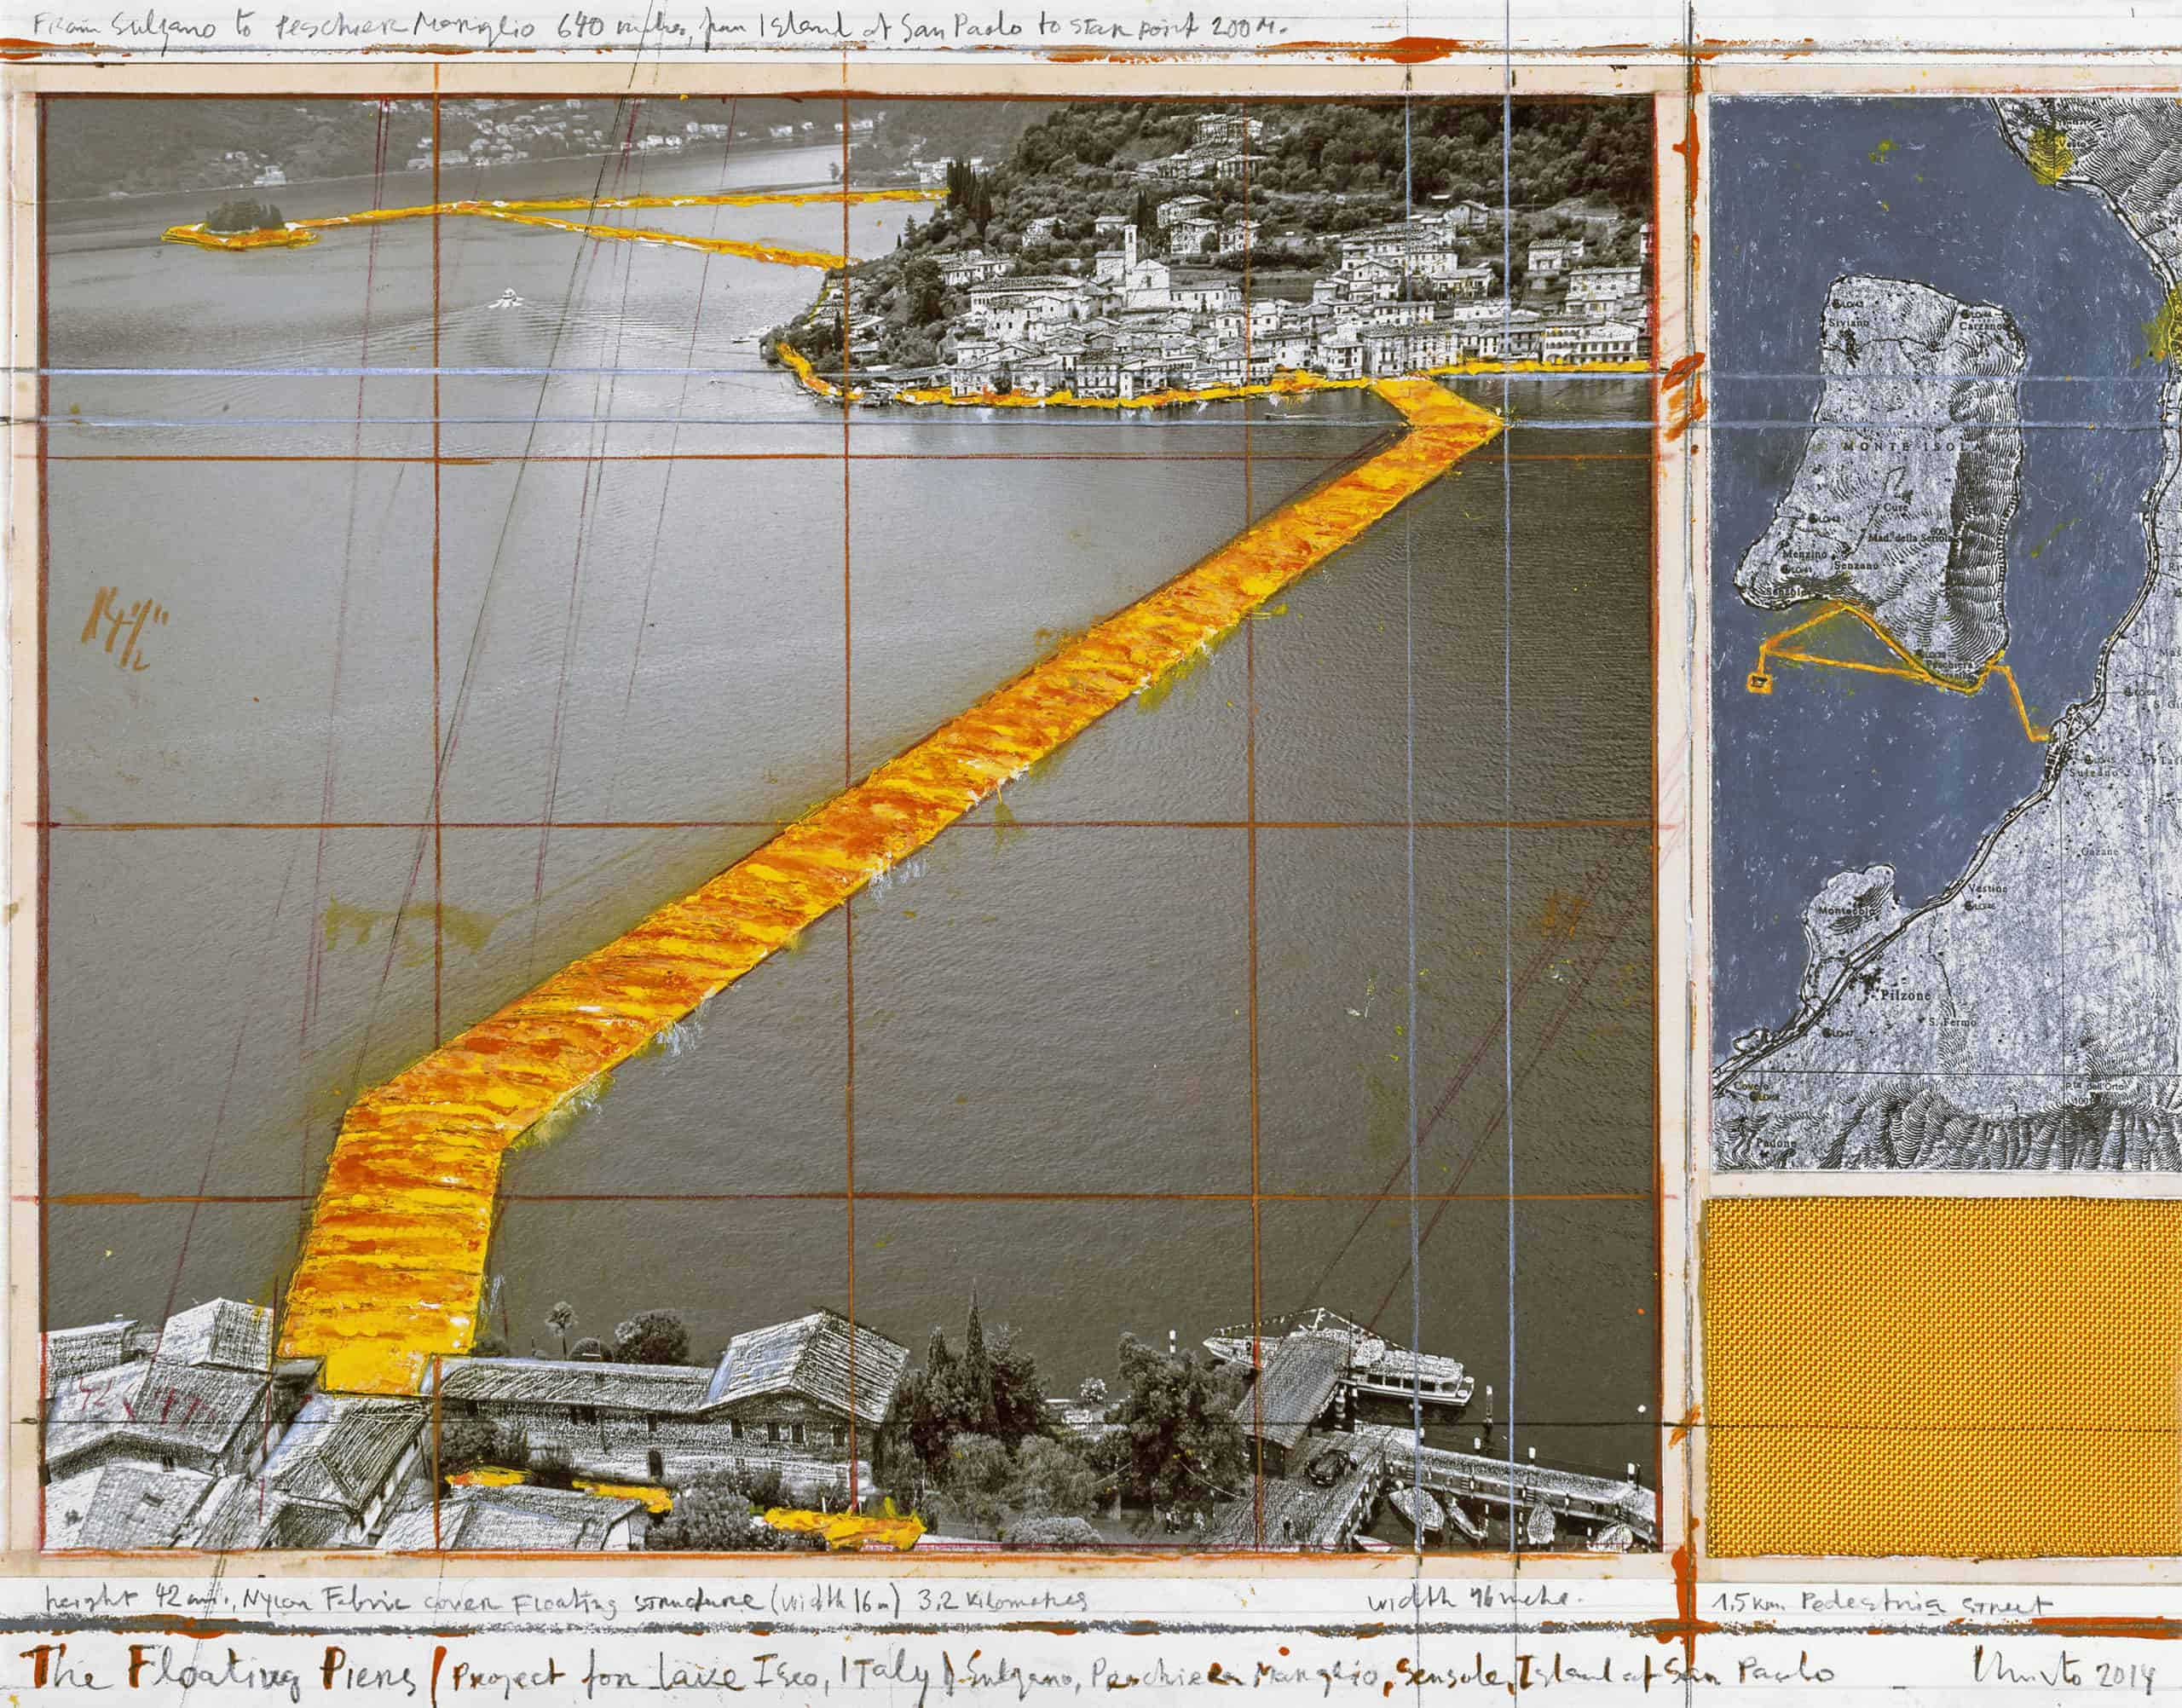 The Floating Piers (Project for Lake Iseo, Italy), 2014, photo: André Grossmann © Christo